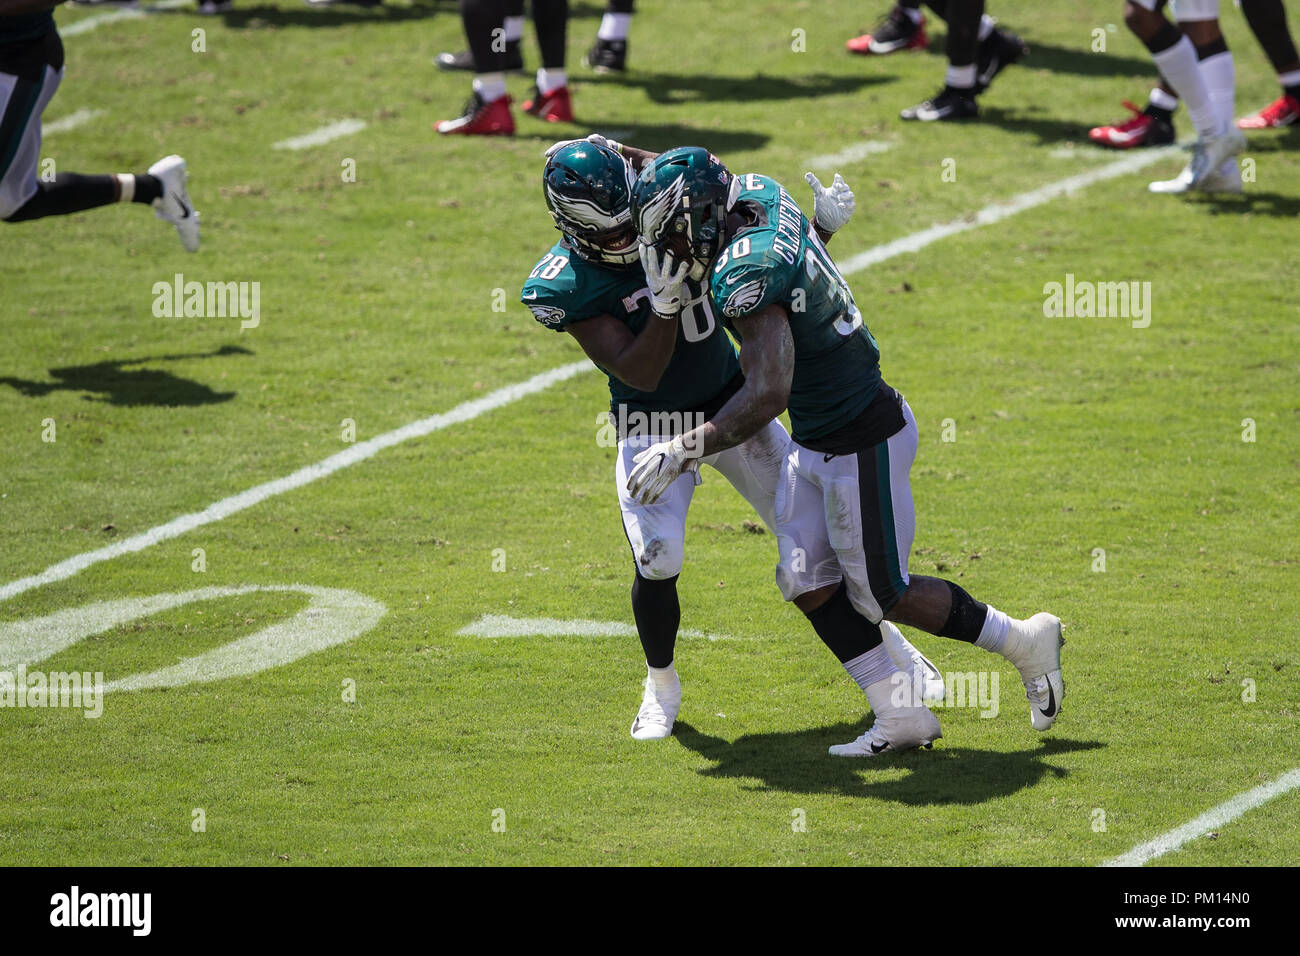 Tampa, Florida, USA. 16th Sep, 2018. Philadelphia Eagles running back Corey Clement (30) celebrates with running back Wendell Smallwood (28) after a touchdown during the second quarter against the Tampa Bay Buccaneer at Raymond James Stadium on Sunday September 16, 2018 in Tampa, Florida. Credit: Travis Pendergrass/ZUMA Wire/Alamy Live News - Stock Image